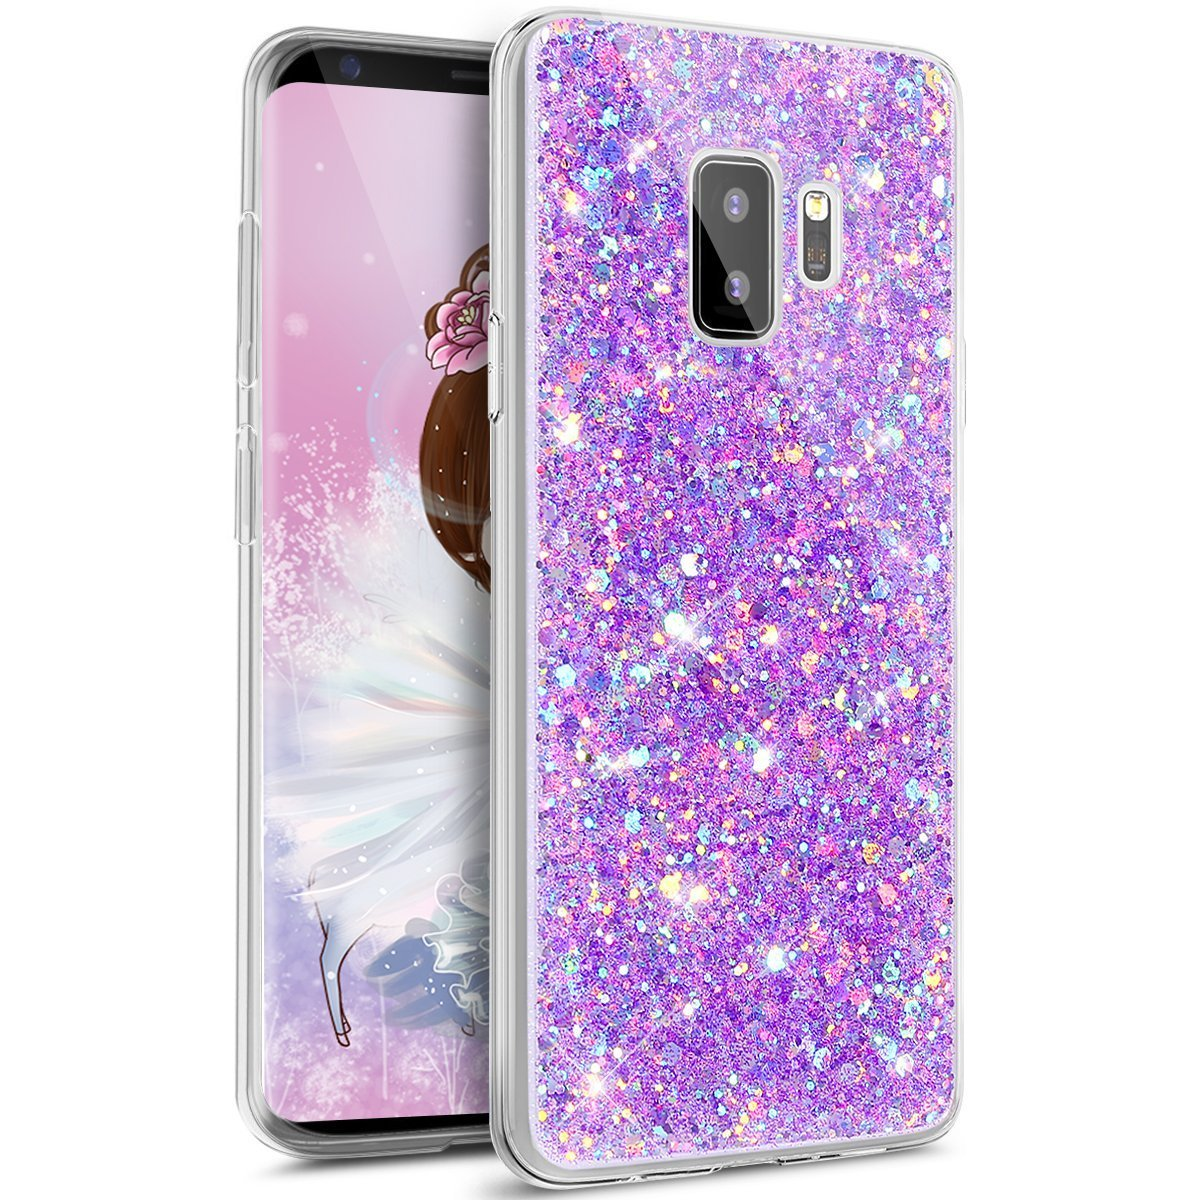 Cover Glitter Galaxy S9 Plus,Custodia Glitter Samsung Galaxy S9 Plus, Ysimee Brilla Bling Custodia morbido trasparente scintillante in TPU Custodia protettiva antipioggia sottile in silicone antiurto per Samsung Galaxy S9 Plus -verde